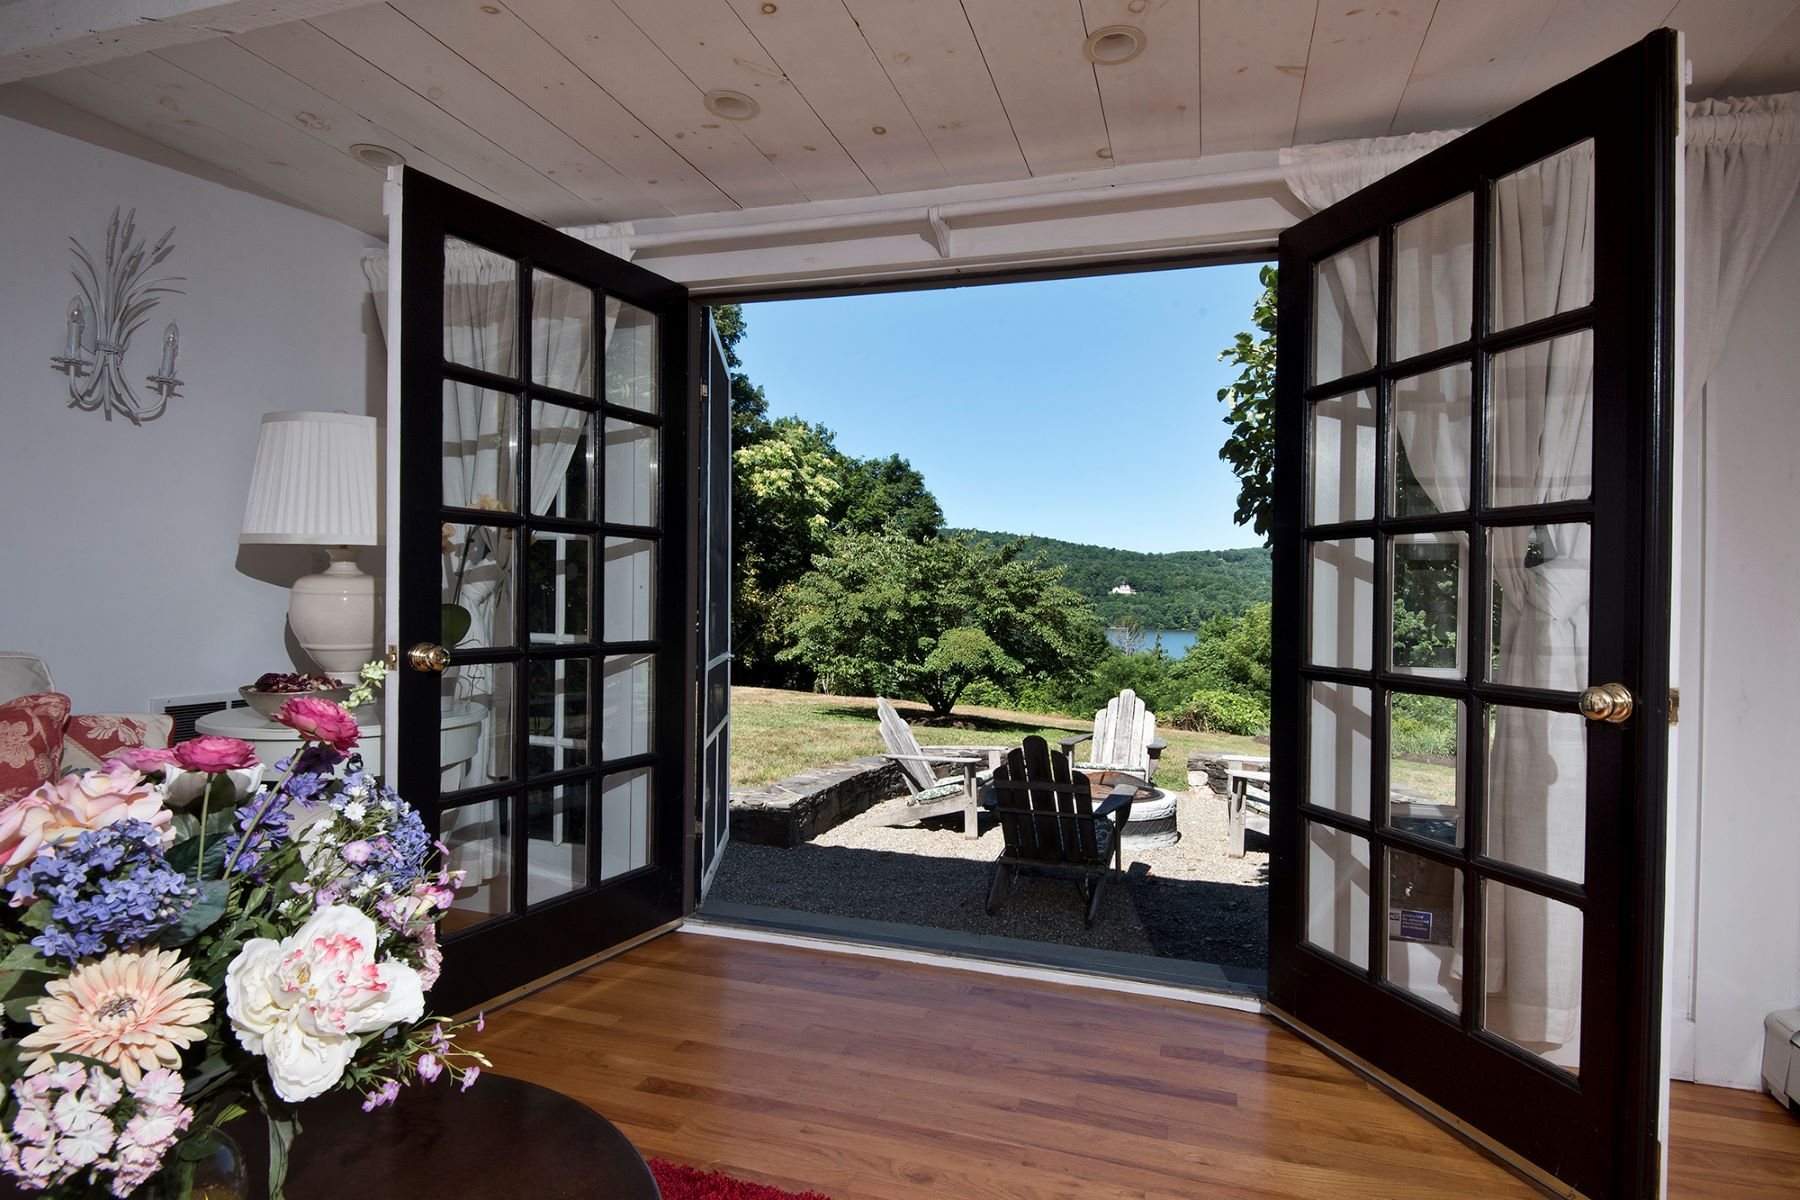 Single Family Home for Sale at Hudson Valley Meets Napa Valley 26 Curry Lane Hyde Park, New York 12538 United States